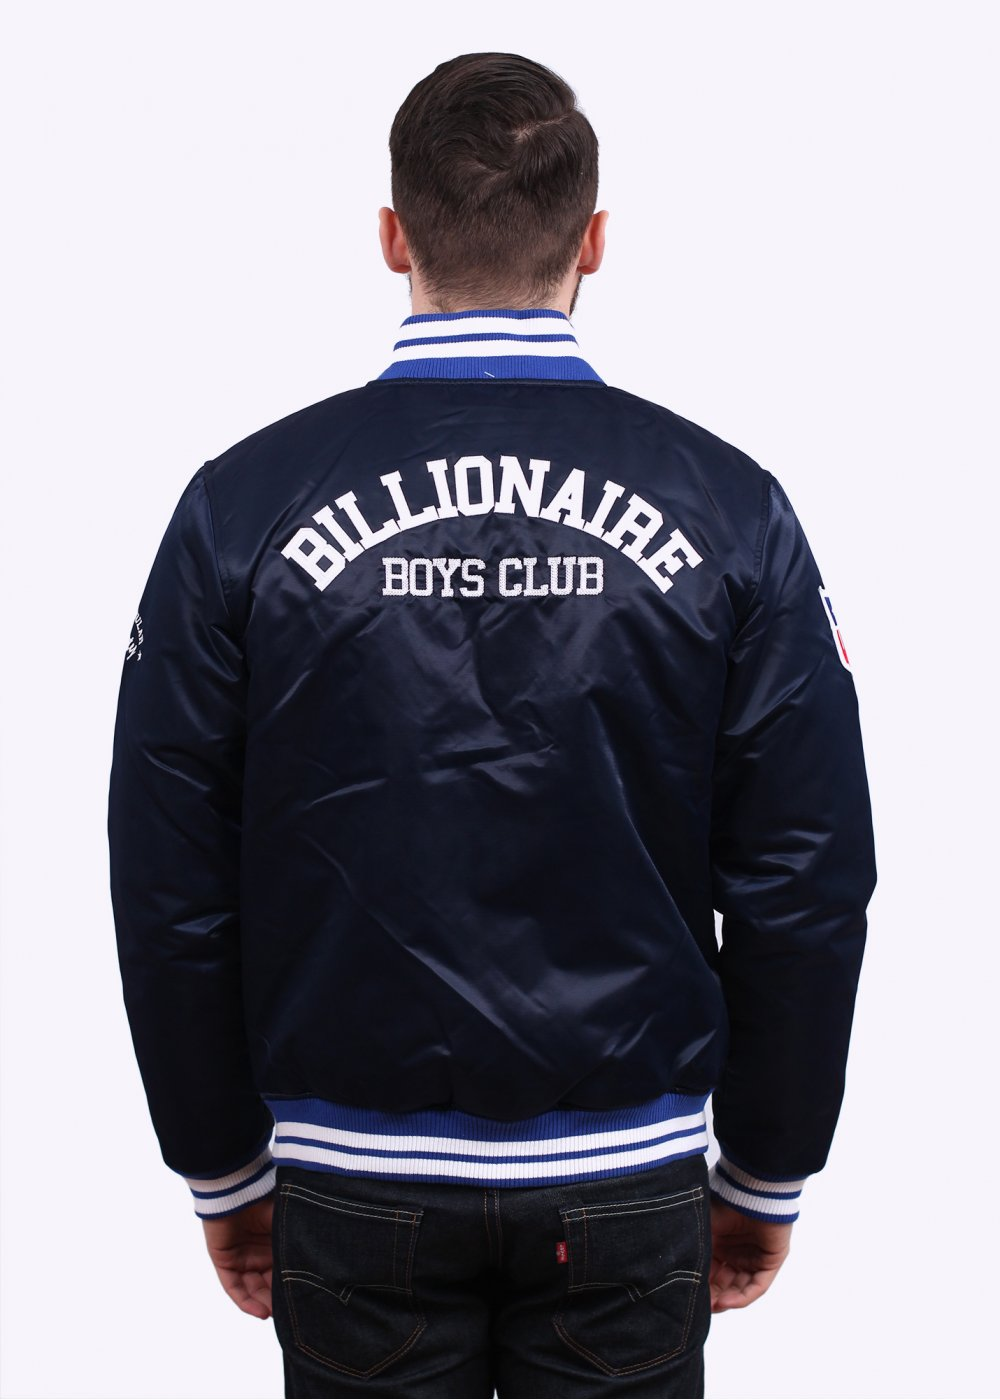 Shop all Billionaire Boys Club branded jackets, hoodies, t-shirts, pants and accessories.